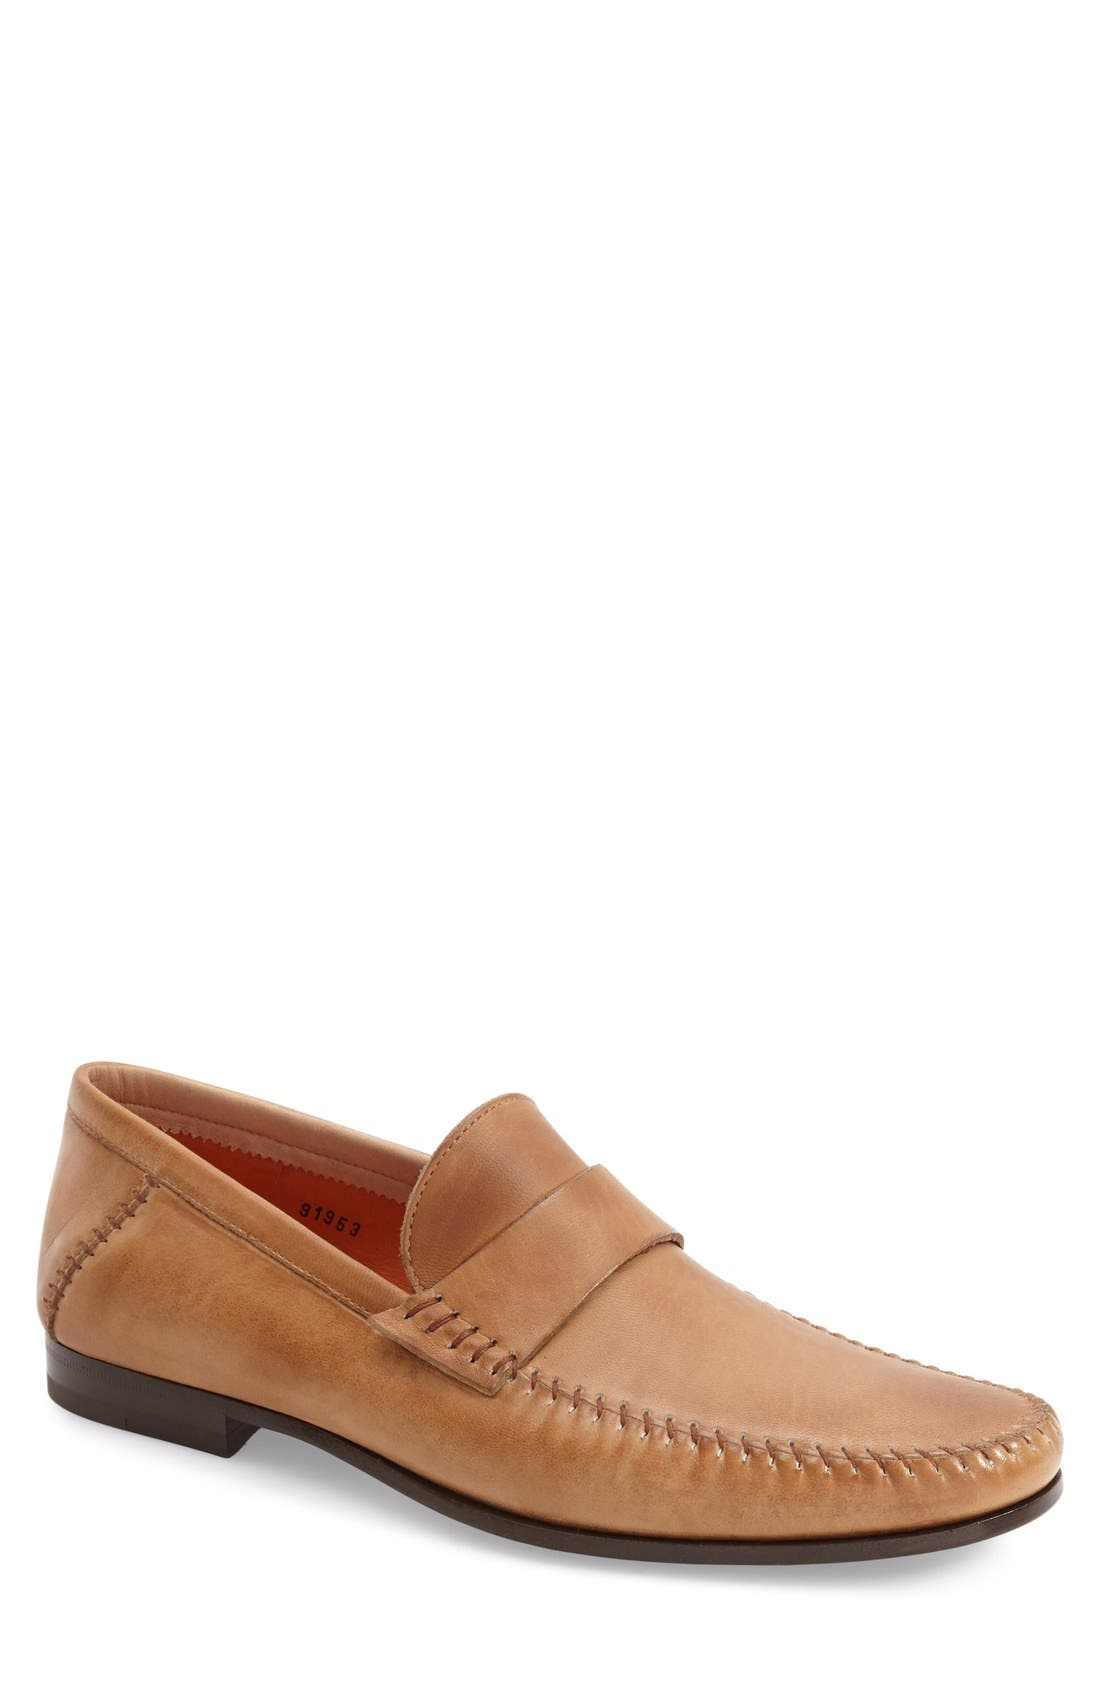 'Paine' Leather Loafer,                         Main,                         color, 260